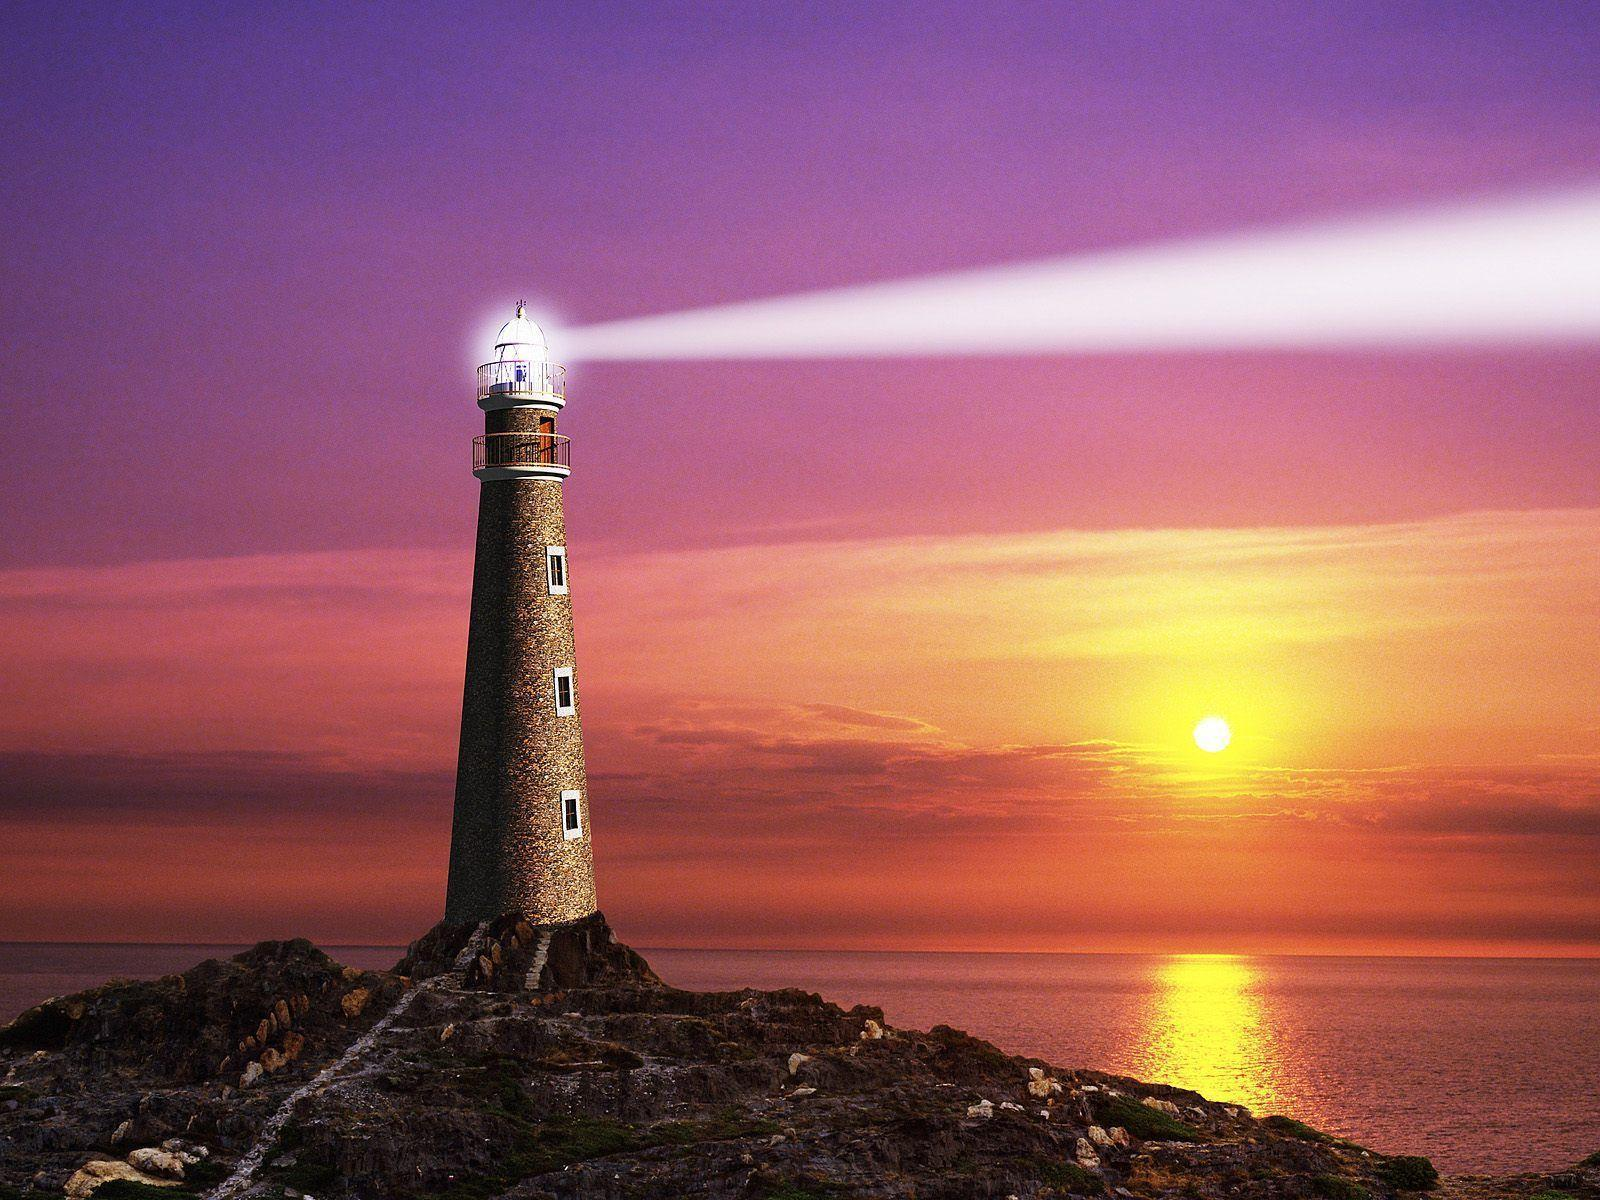 the coastal lighthouse computer art photography desktop wallpapers